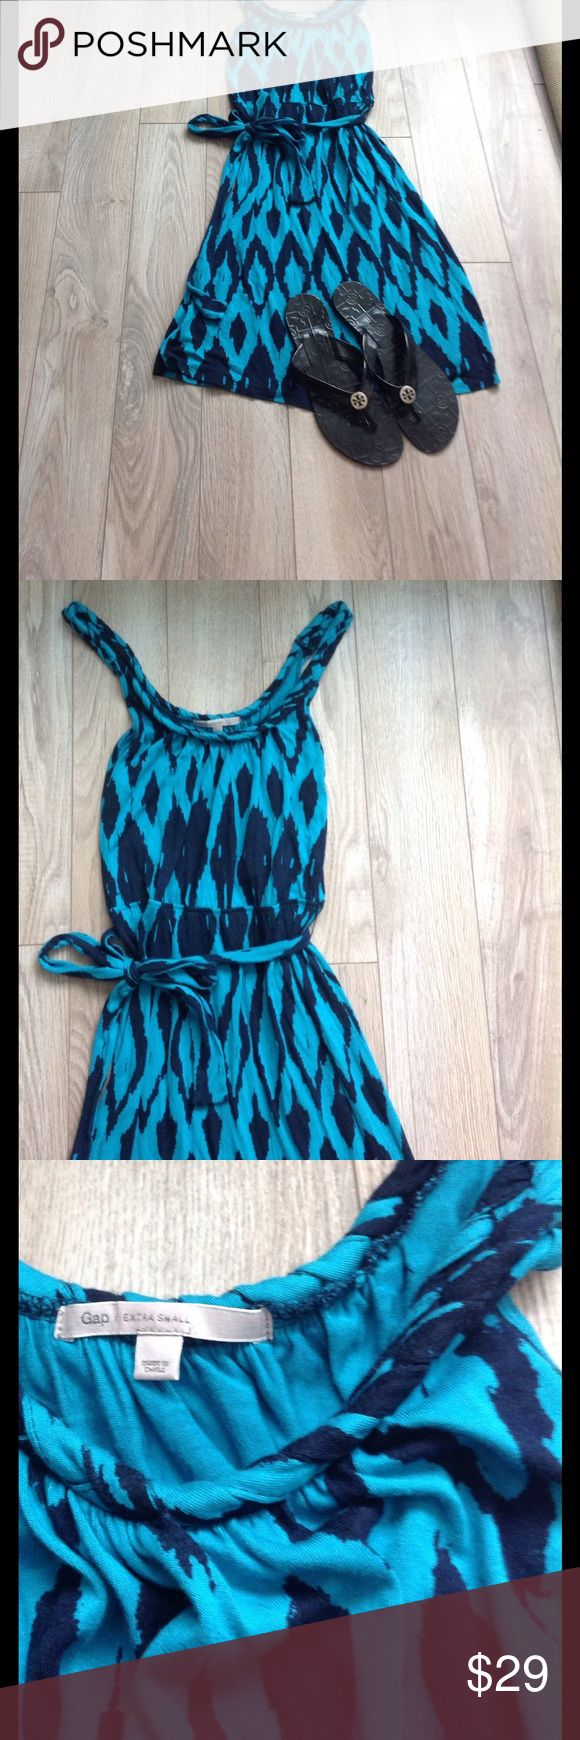 "Gap blue beach dress XS dress by Gap.  Has braided straps and a tie at waist. Measures: 16"" pit to pit unstretched, 36 long. Color is a blue green. GAP Dresses Mini"